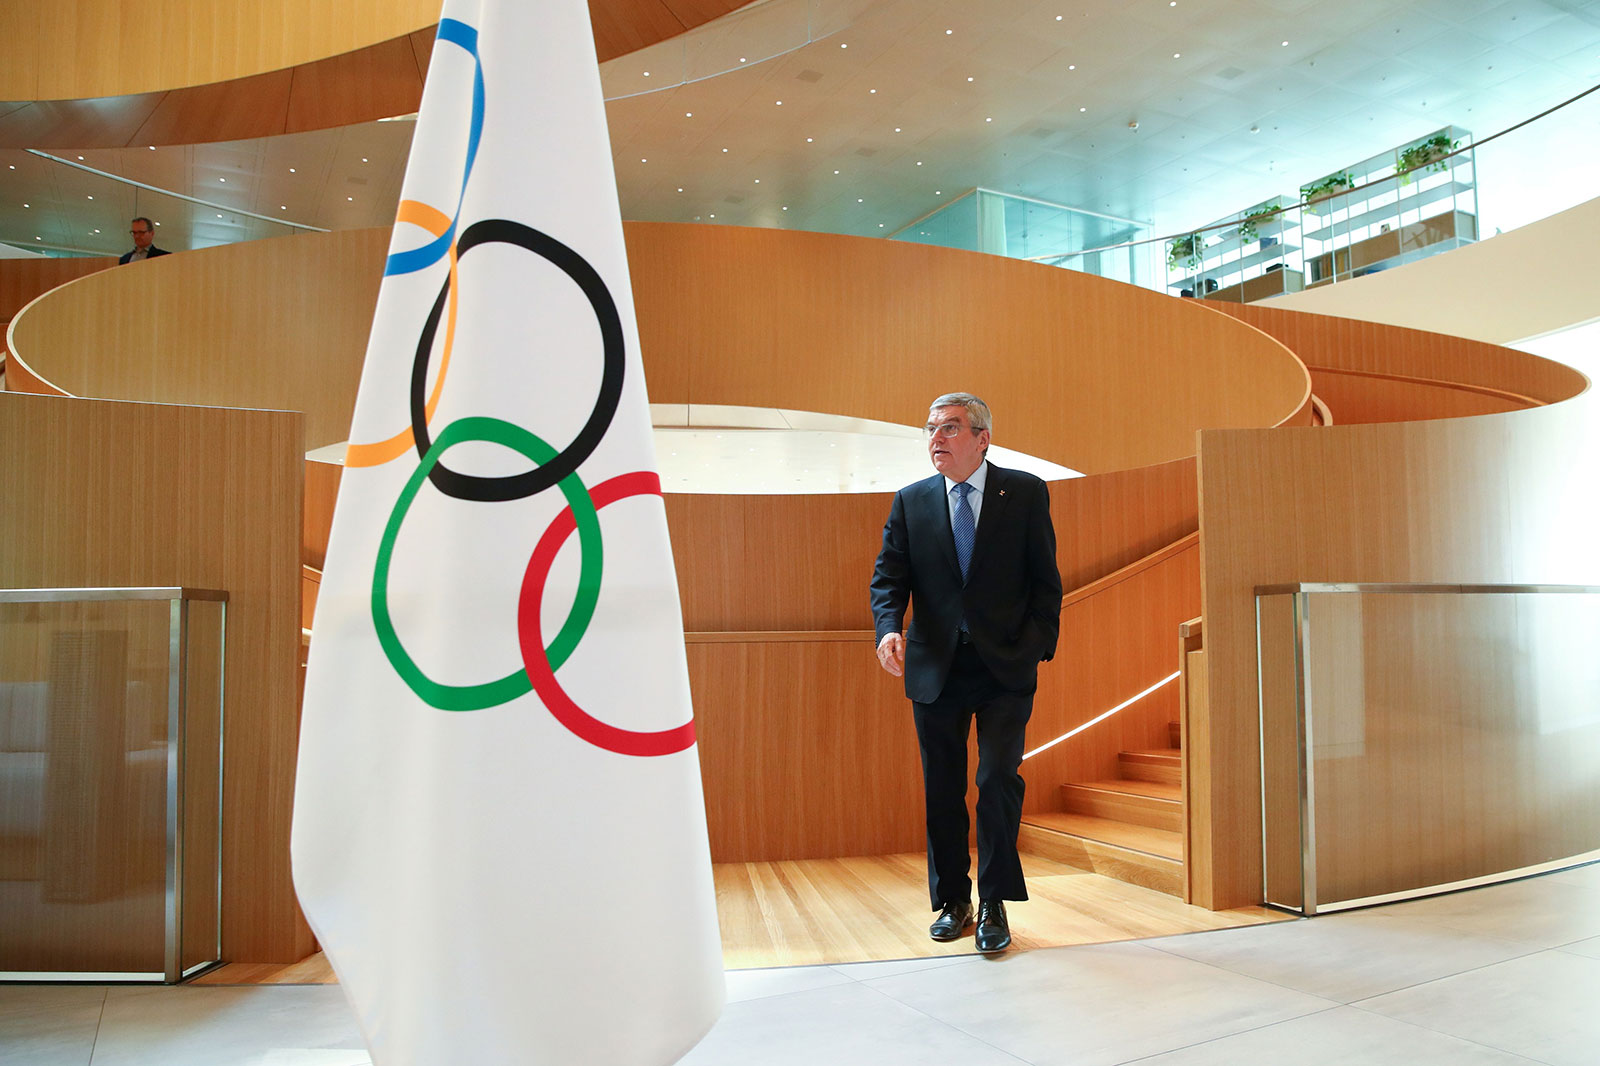 """International Olympic Committee (IOC) President Thomas Bach arrives for an interview after the historic decision to postpone the 2020 Tokyo Olympic Games due to the coronavirus pandemic, in Lausanne, Switzerland, on March 25, 2020. - Olympic chief Bach says """"all options are on the table"""" over finding a new date to hold the postponed Tokyo Games. Tokyo 2020 became the first Olympics in peacetime to be postponed due to the coronavirus pandemic. Announcing the unprecedented decision on March 24, the International Olympic Committee gave no specific new date, saying only it would be """"beyond 2020 but not later than summer 2021"""". (Photo by Denis Balibouse / POOL / AFP) (Photo by DENIS BALIBOUSE/POOL/AFP via Getty Images)"""